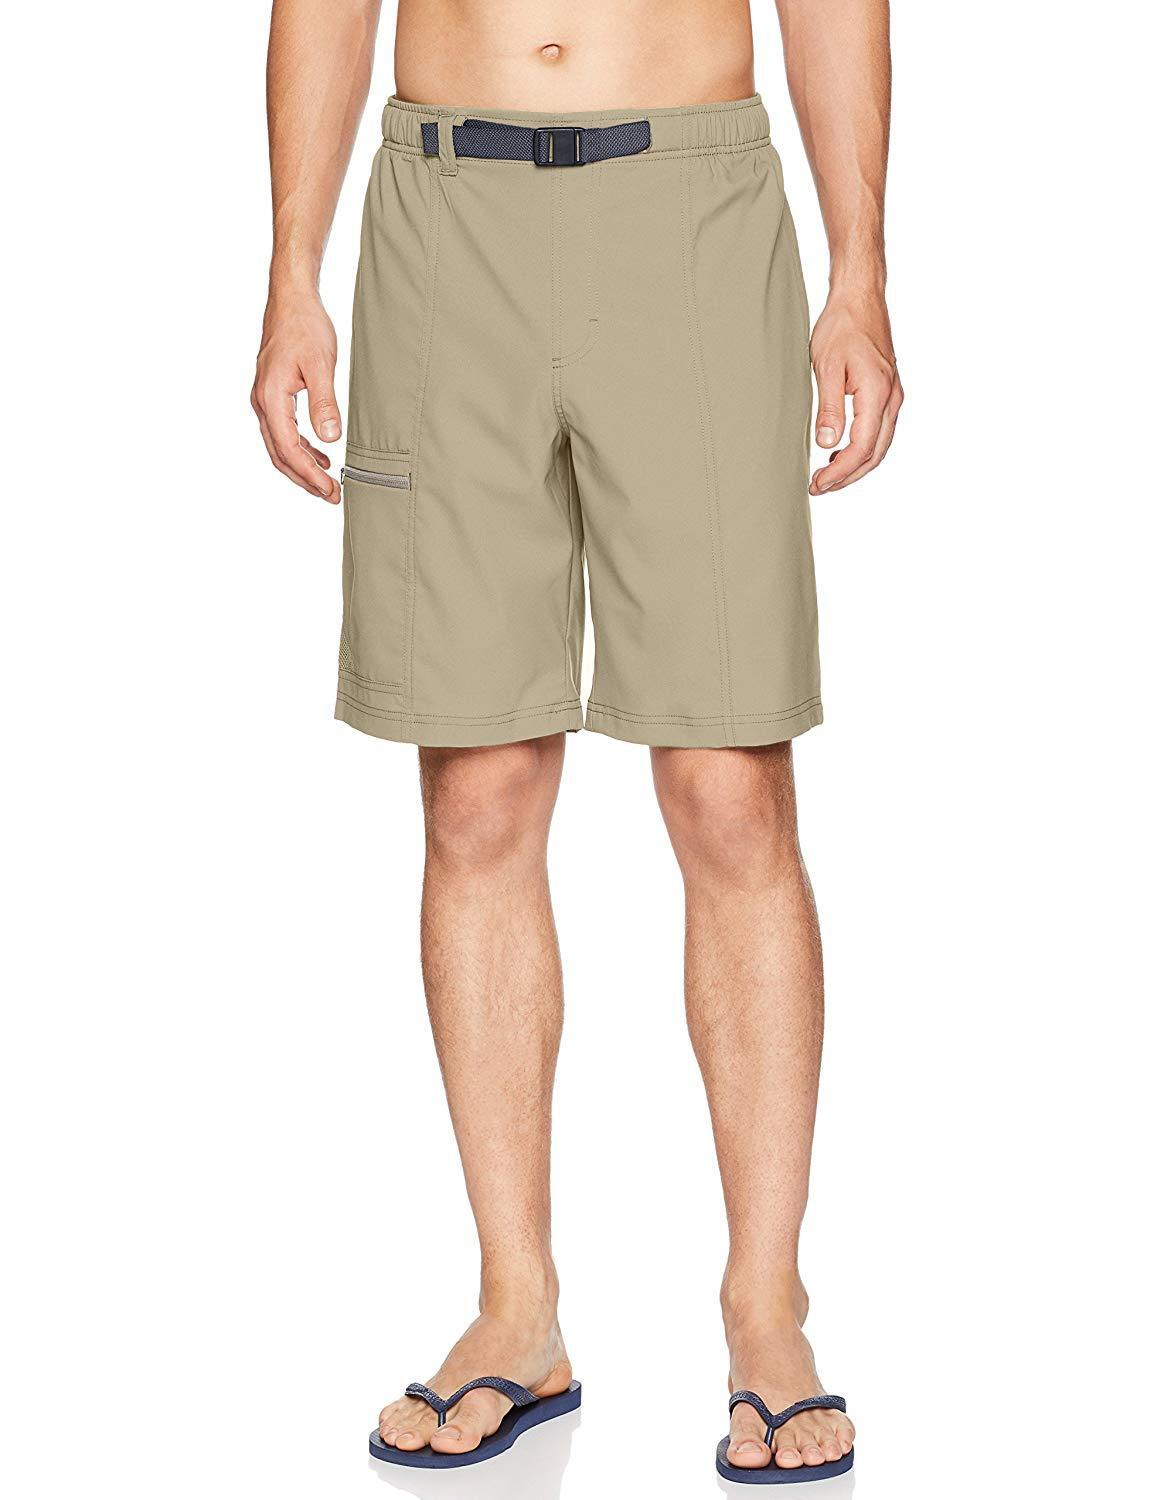 Columbia Men's Trail Splash Shorts Cargo Water Repellent Tan Tusk 10  Inseam